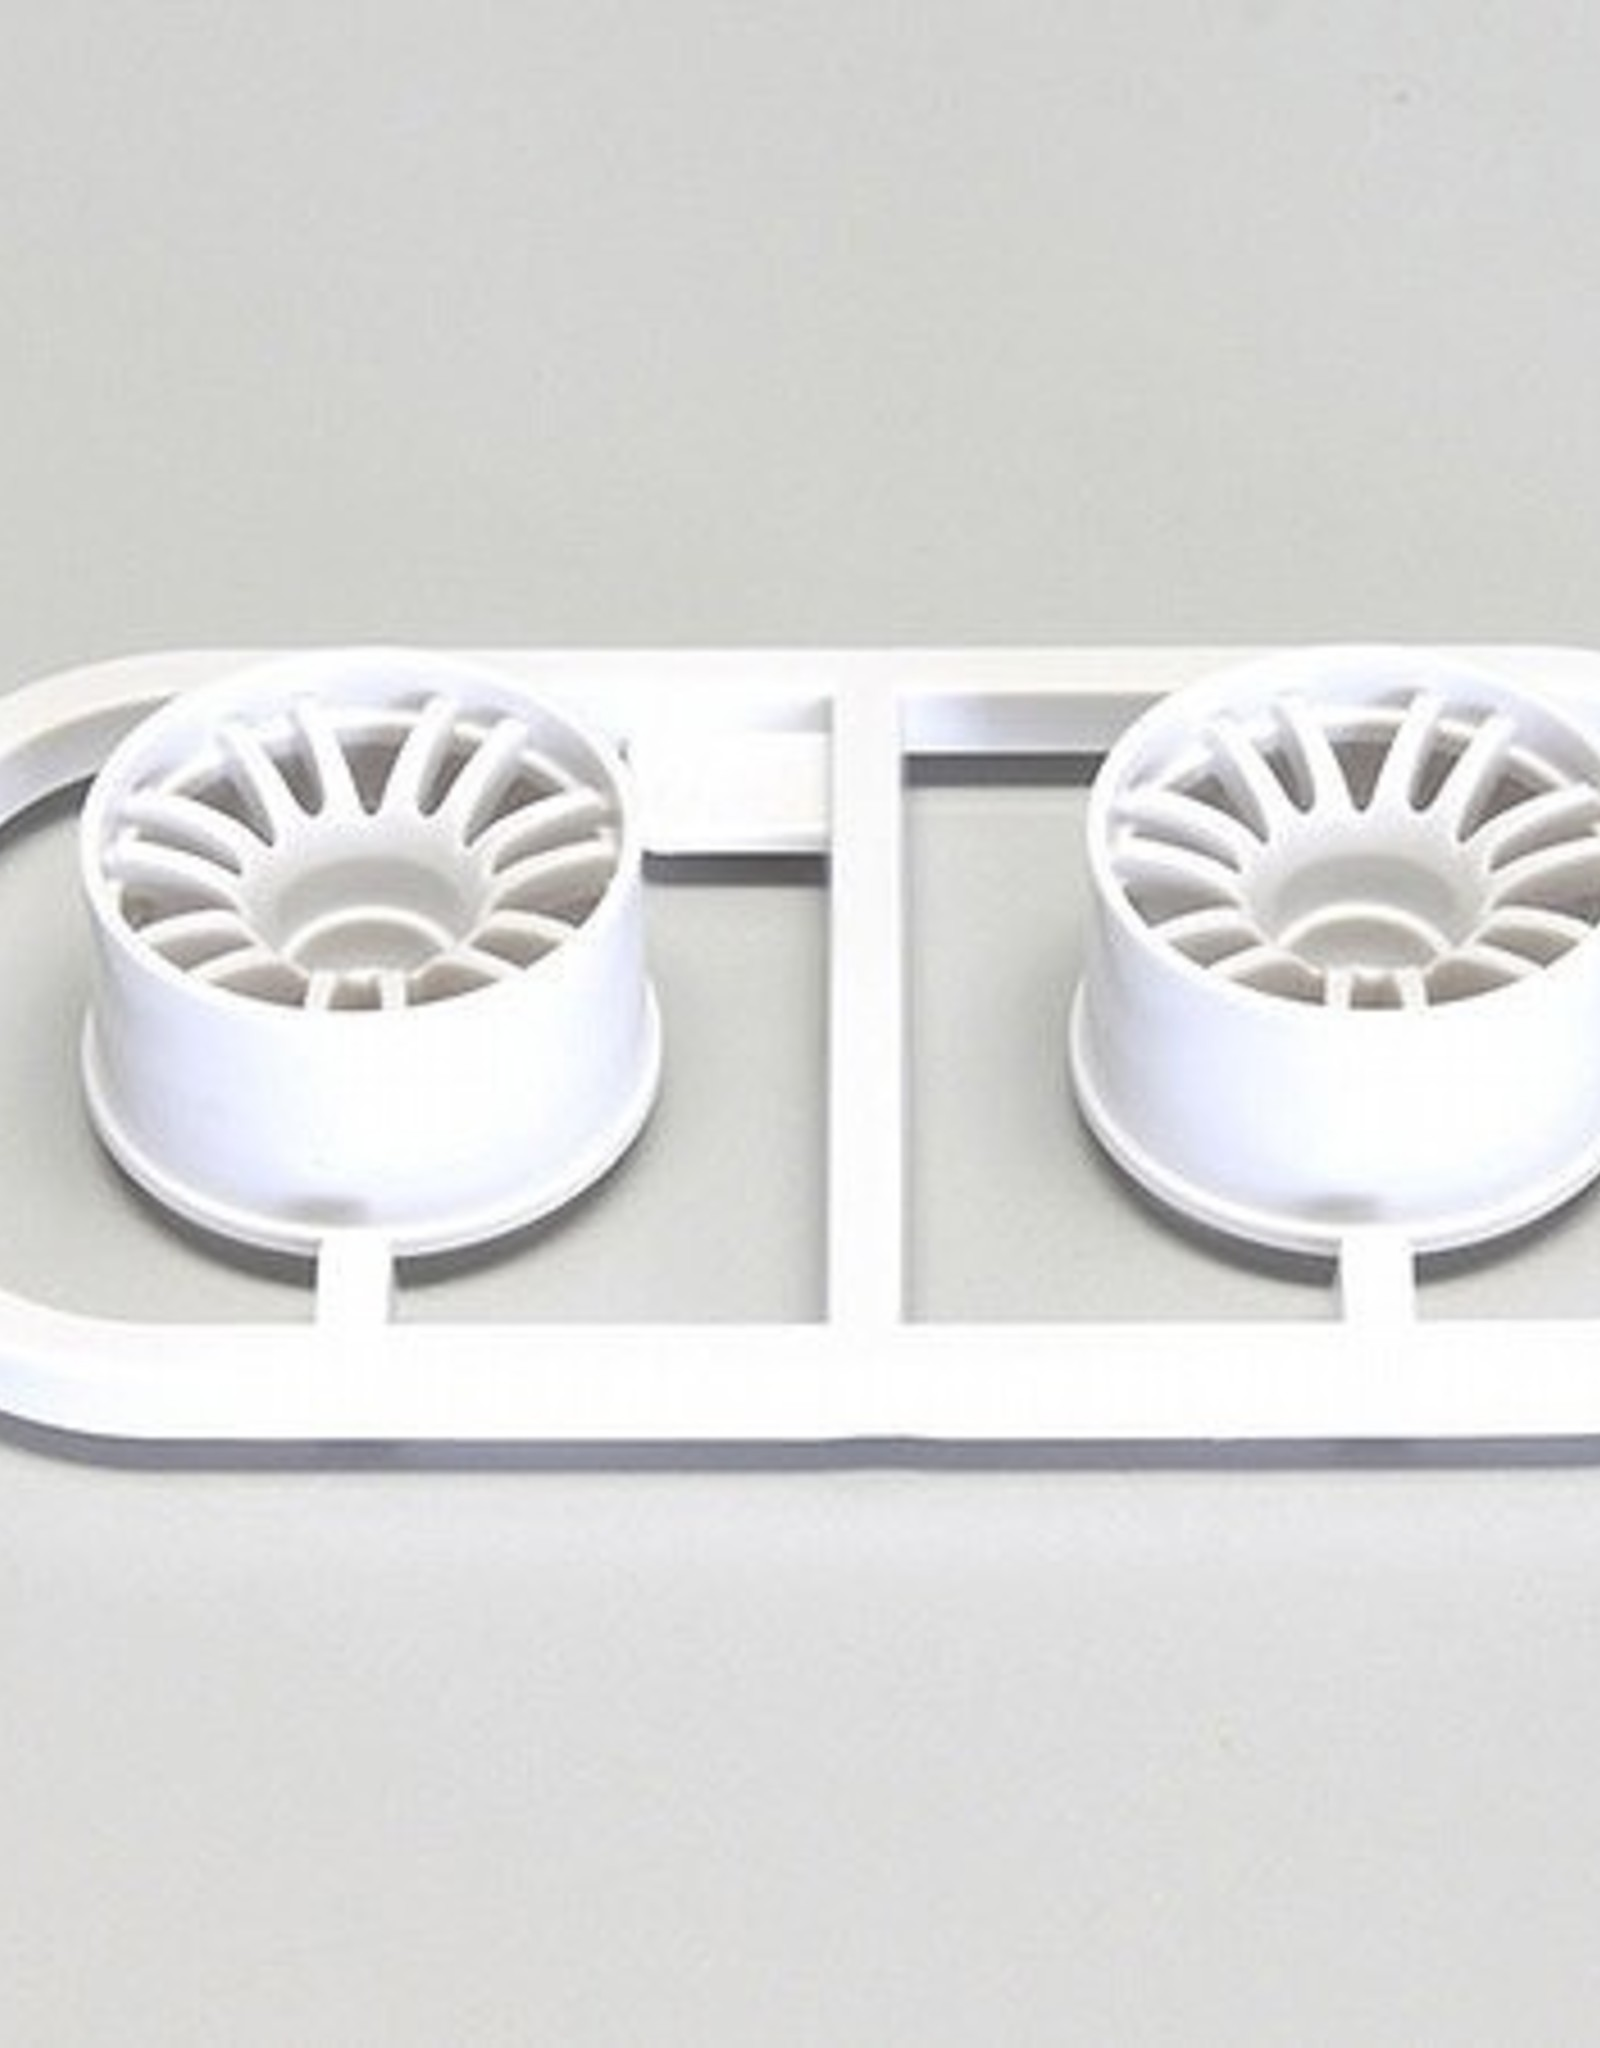 Kyosho Kyosho Multi Wheel II W/Offset 2.0mm (White/RE30/2pcs)